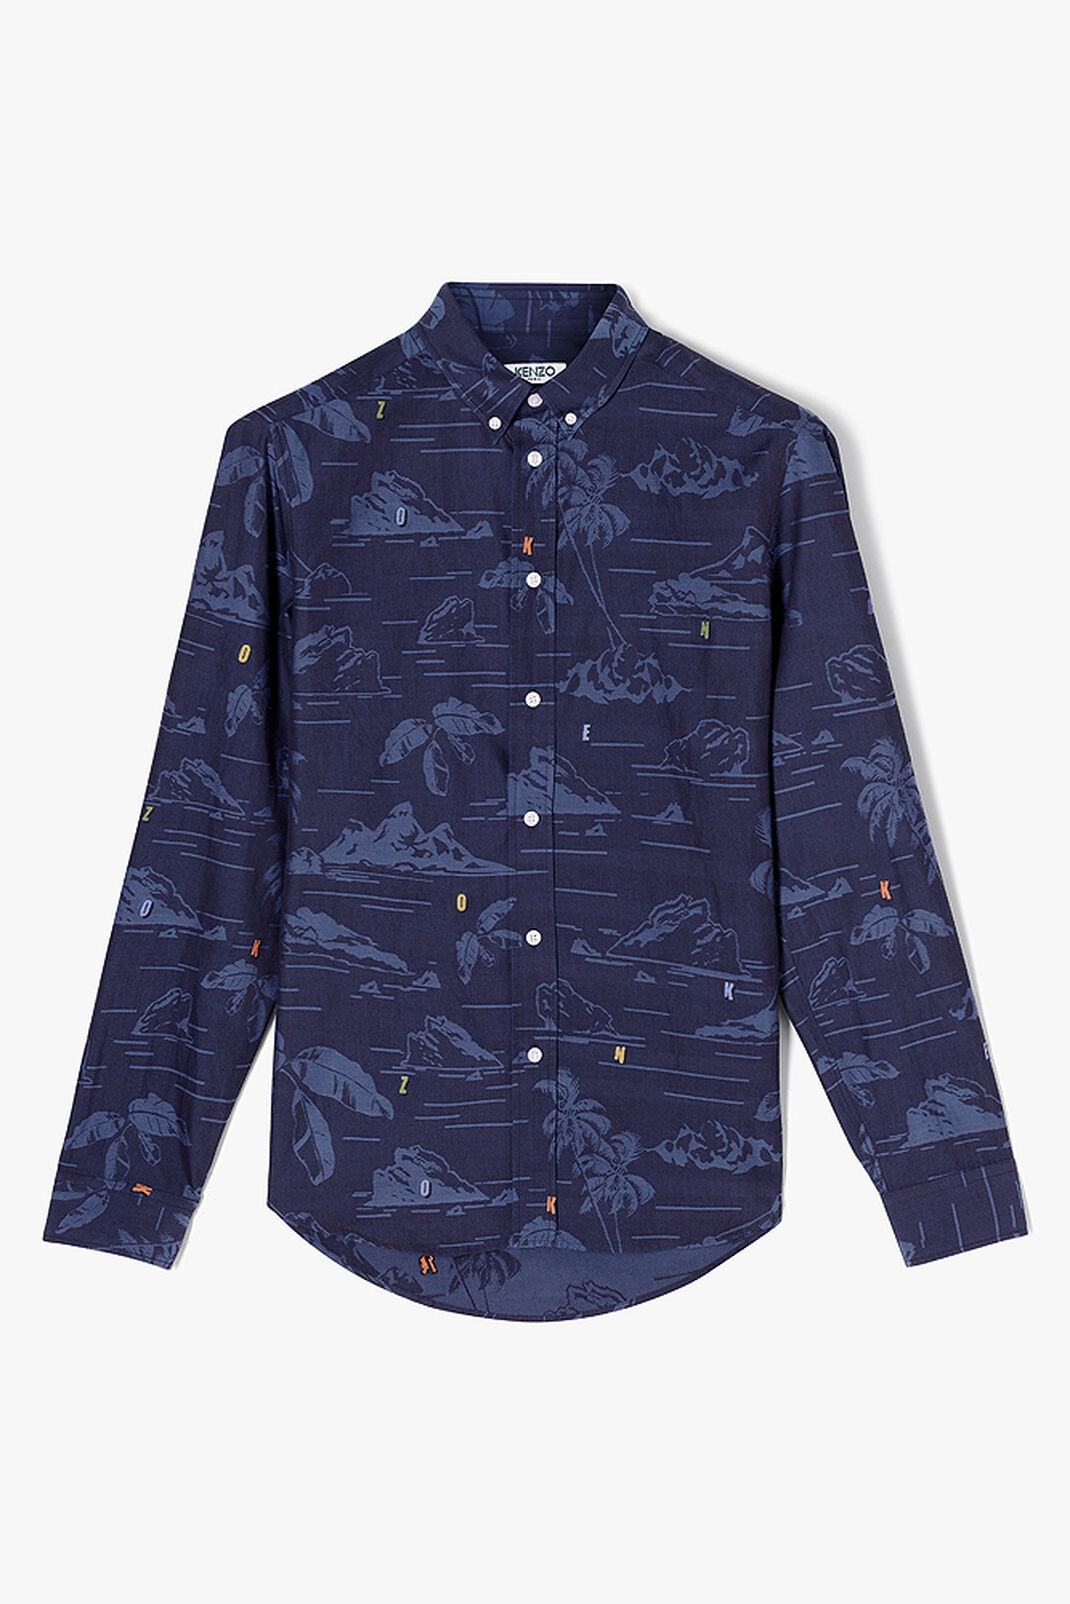 NAVY BLUE 'Tropical Ice' Shirt for women KENZO